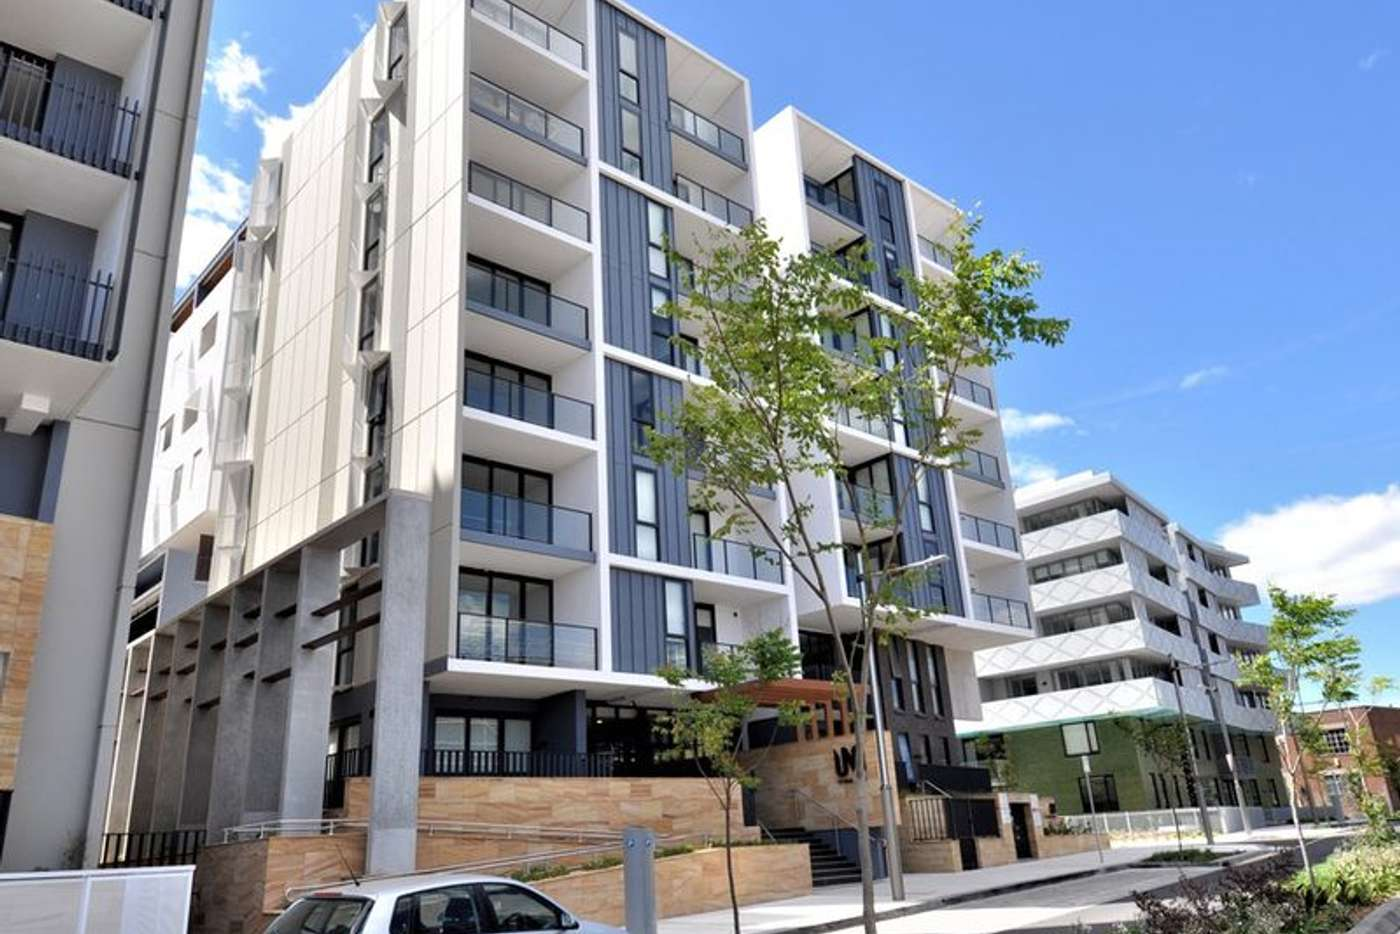 Main view of Homely apartment listing, C505/12 Paul Street, Zetland NSW 2017